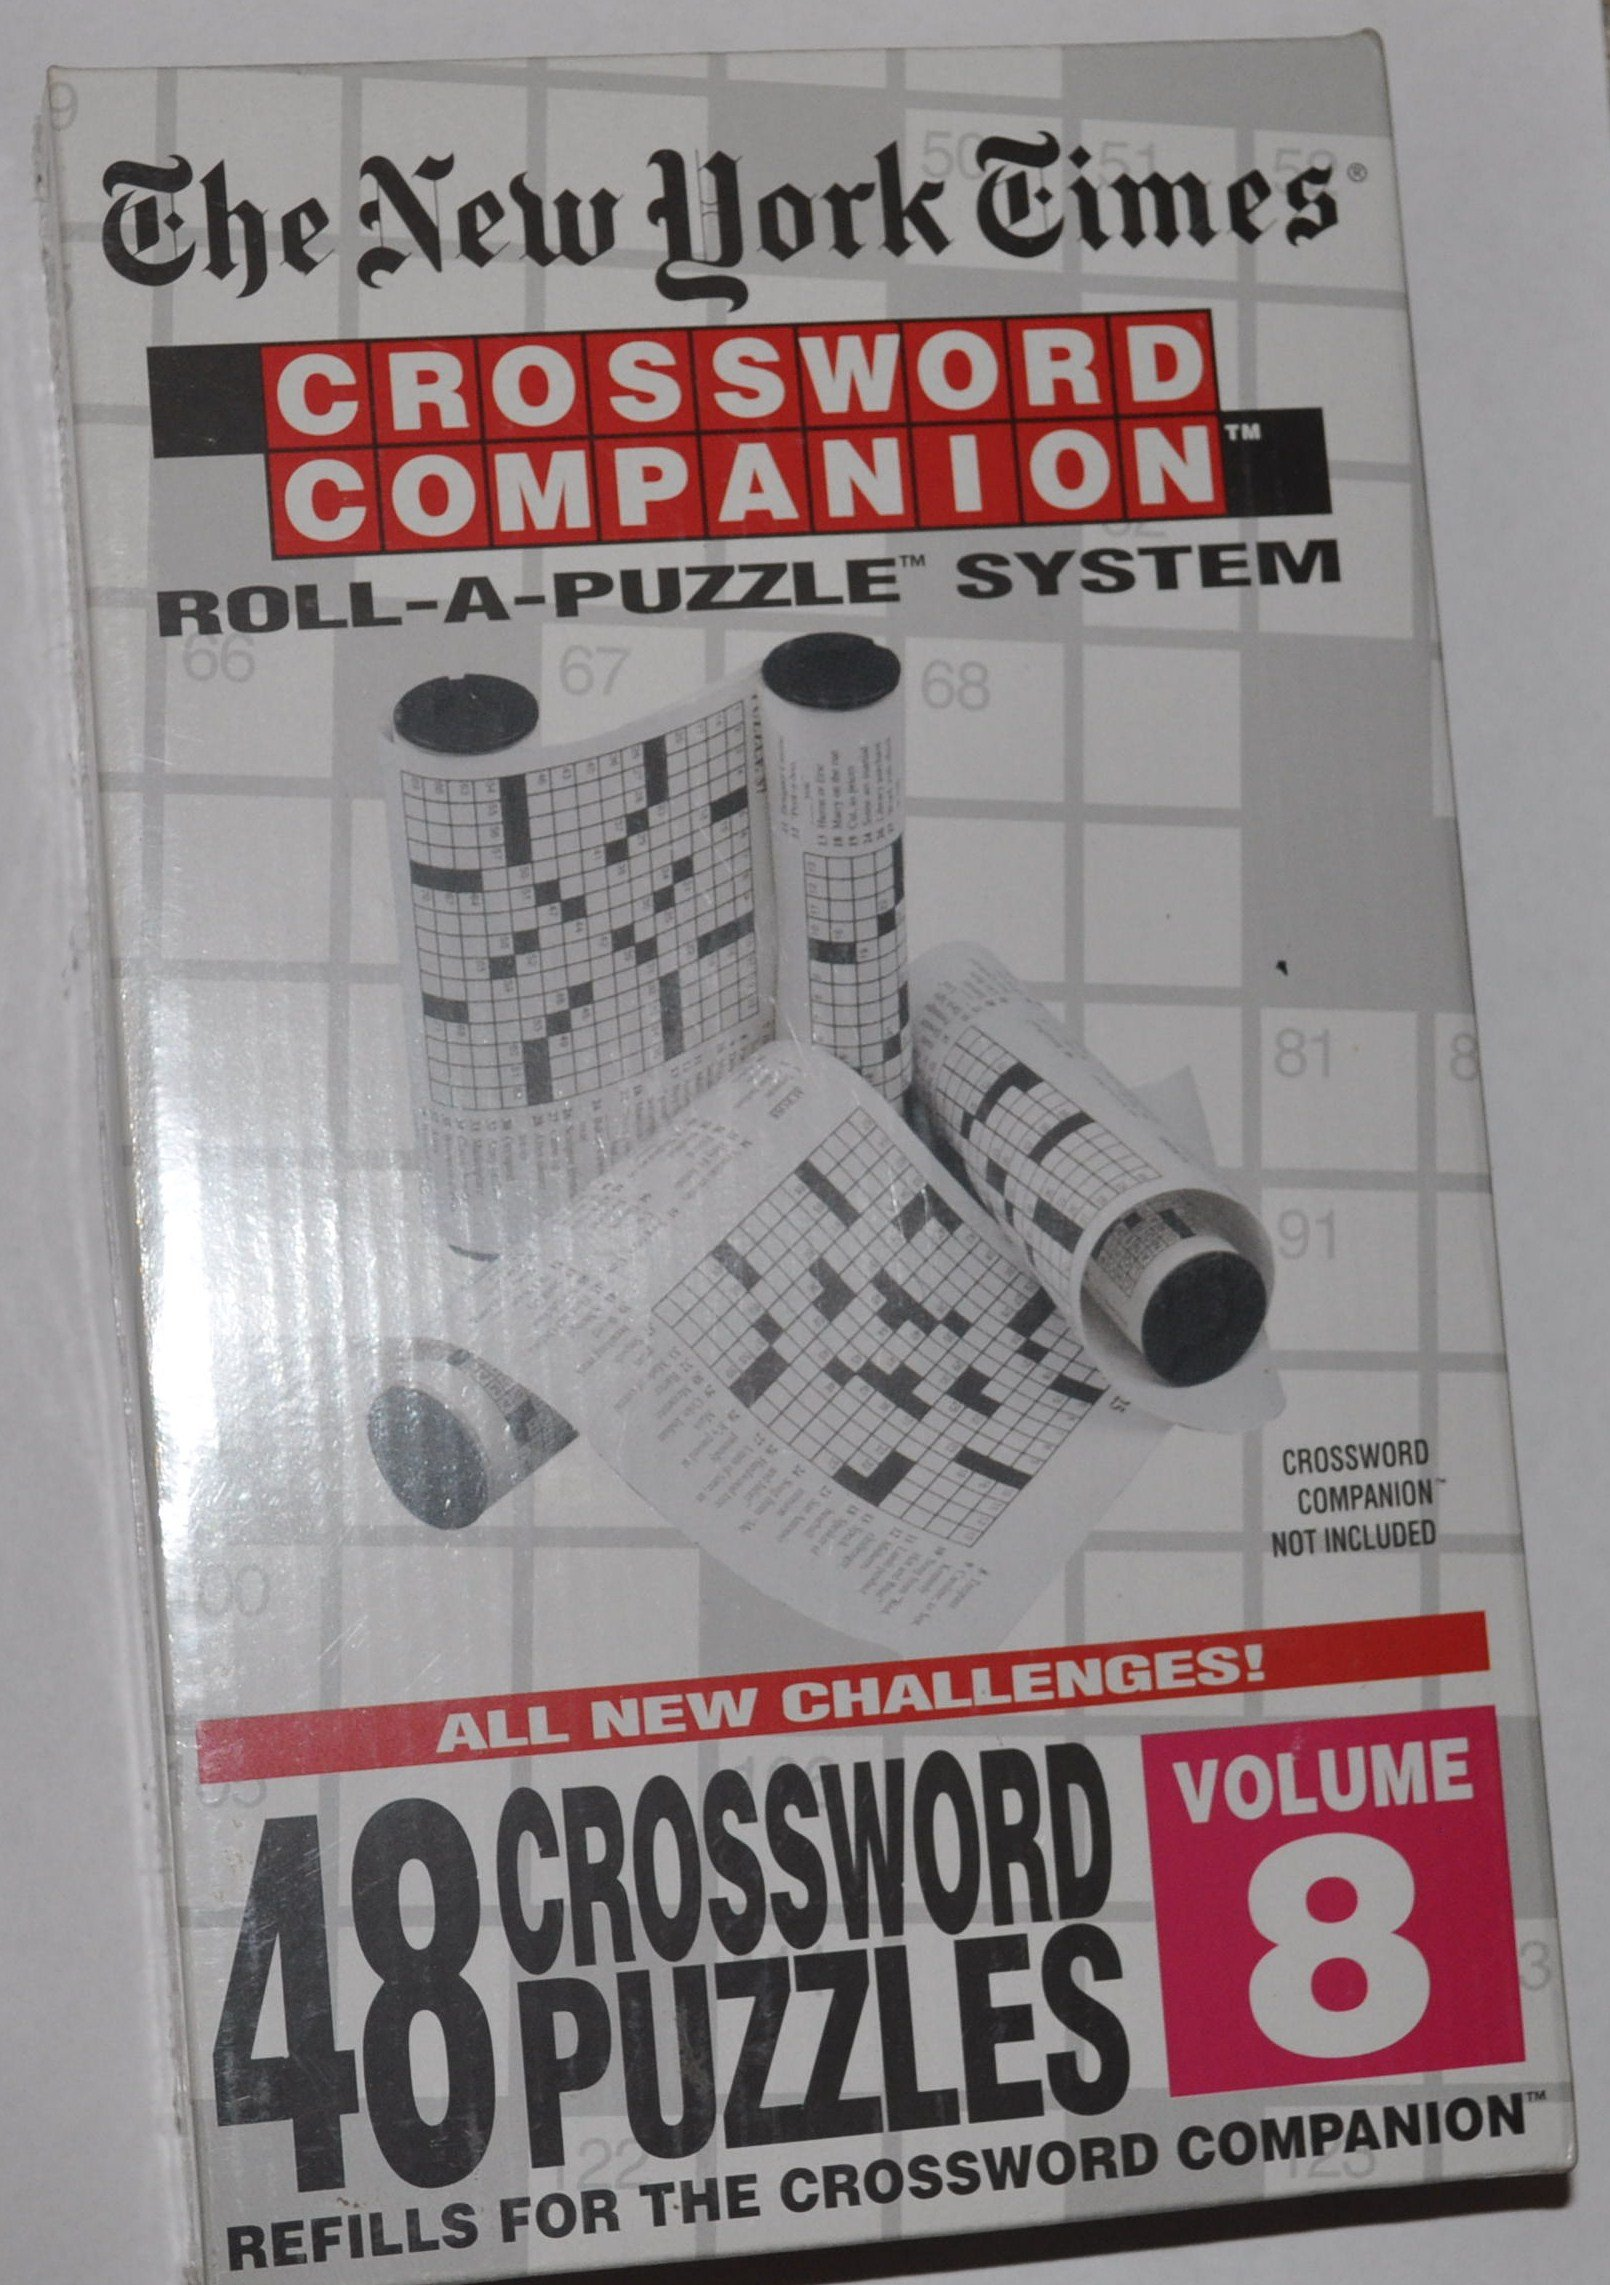 The New York Times: Crossword Companion Roll-A-Puzzle Refills Volume 8